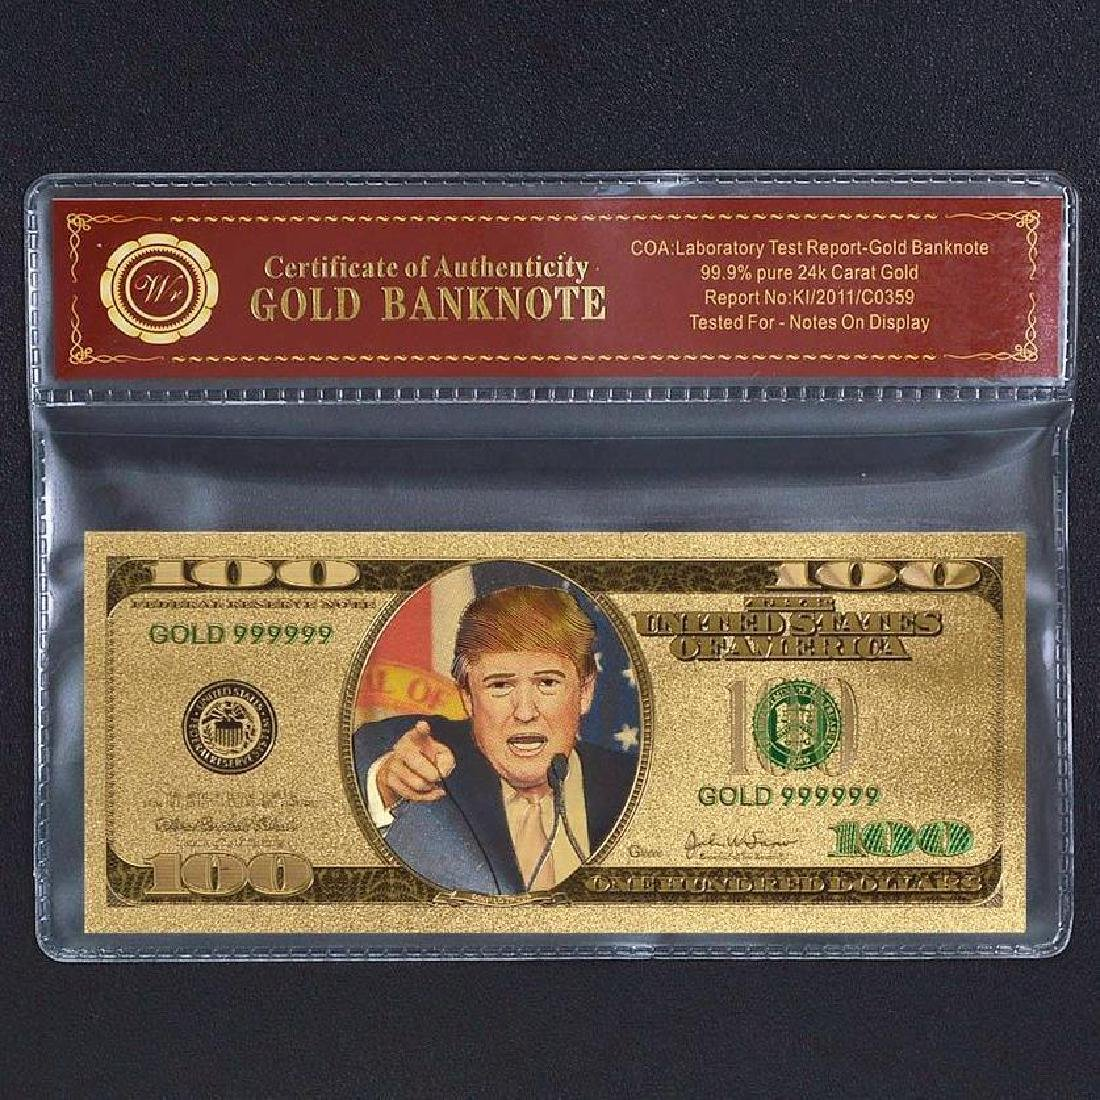 Donald Trump $100 Colored 24K Gold Clad Banknote